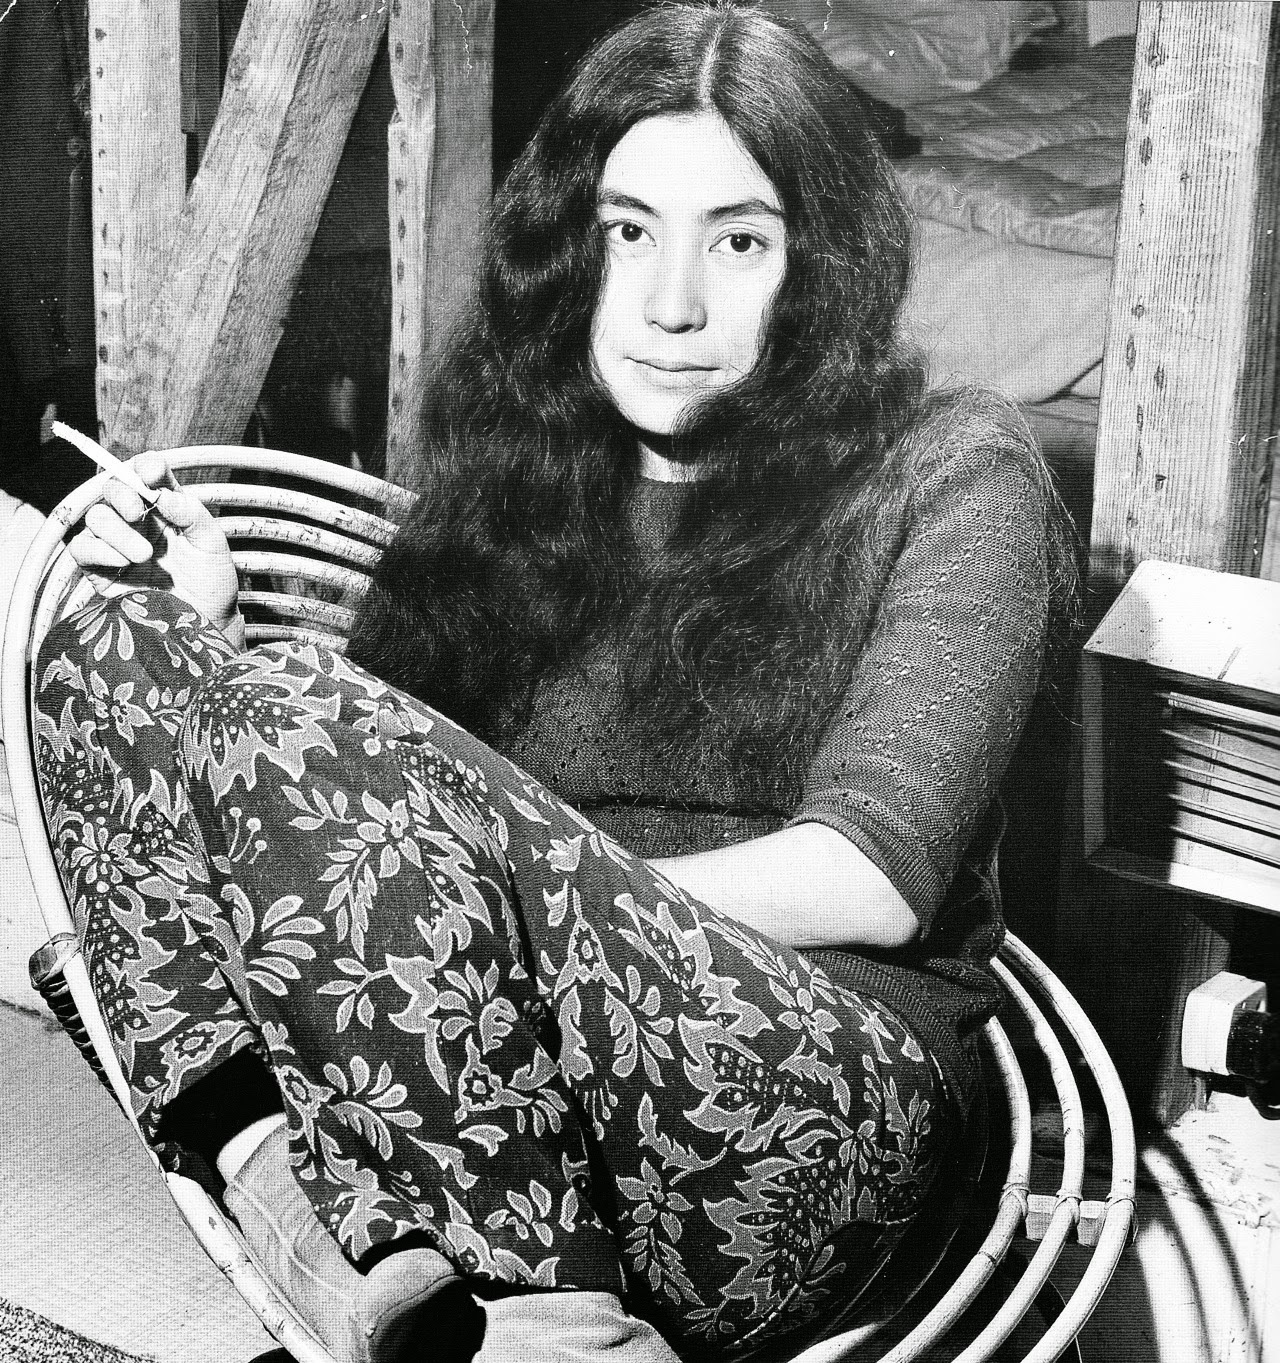 Rare Portraits Of Yoko Ono In The Early 1960s, Before She